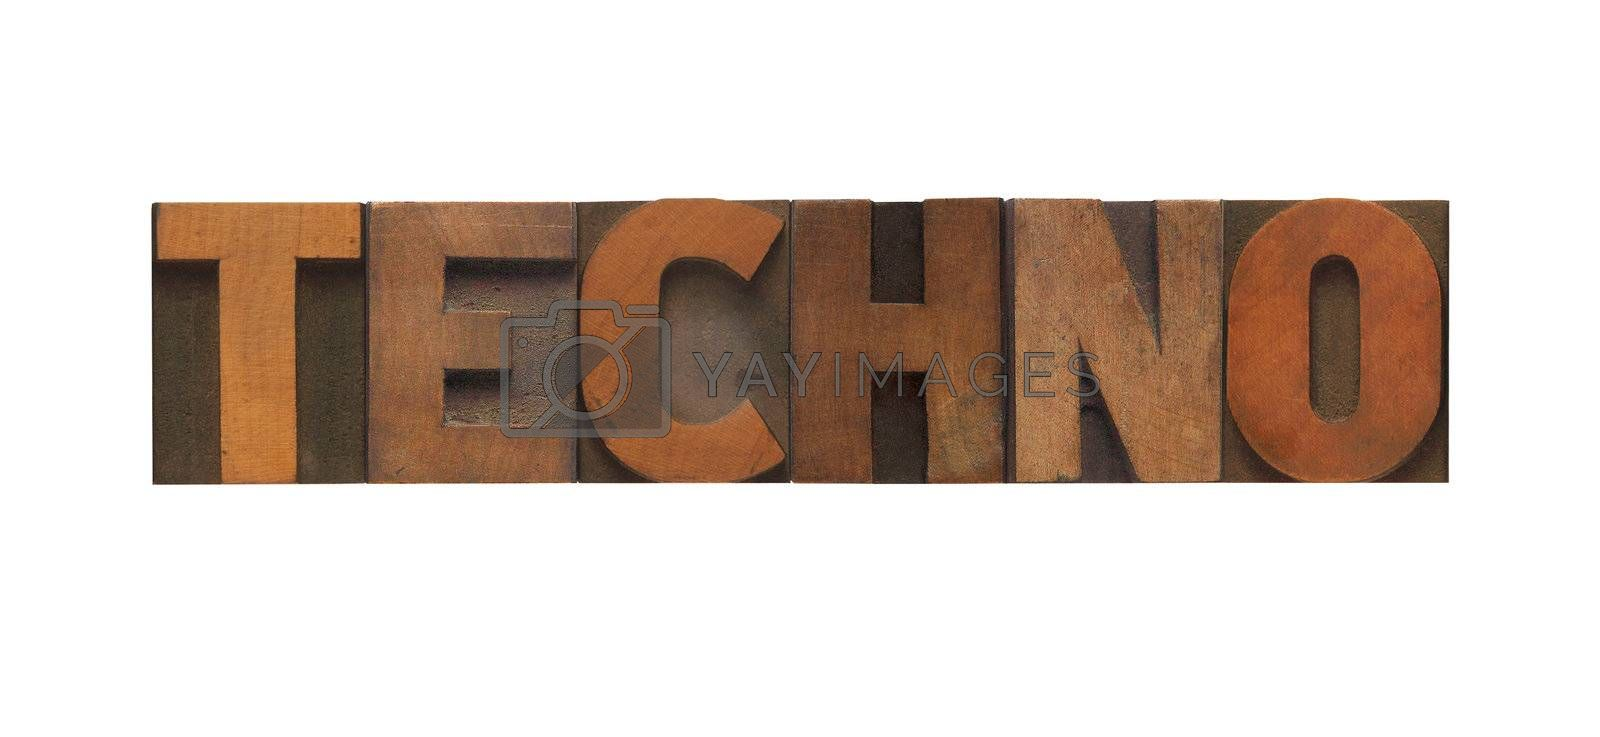 the word techno in old letterpress wood type